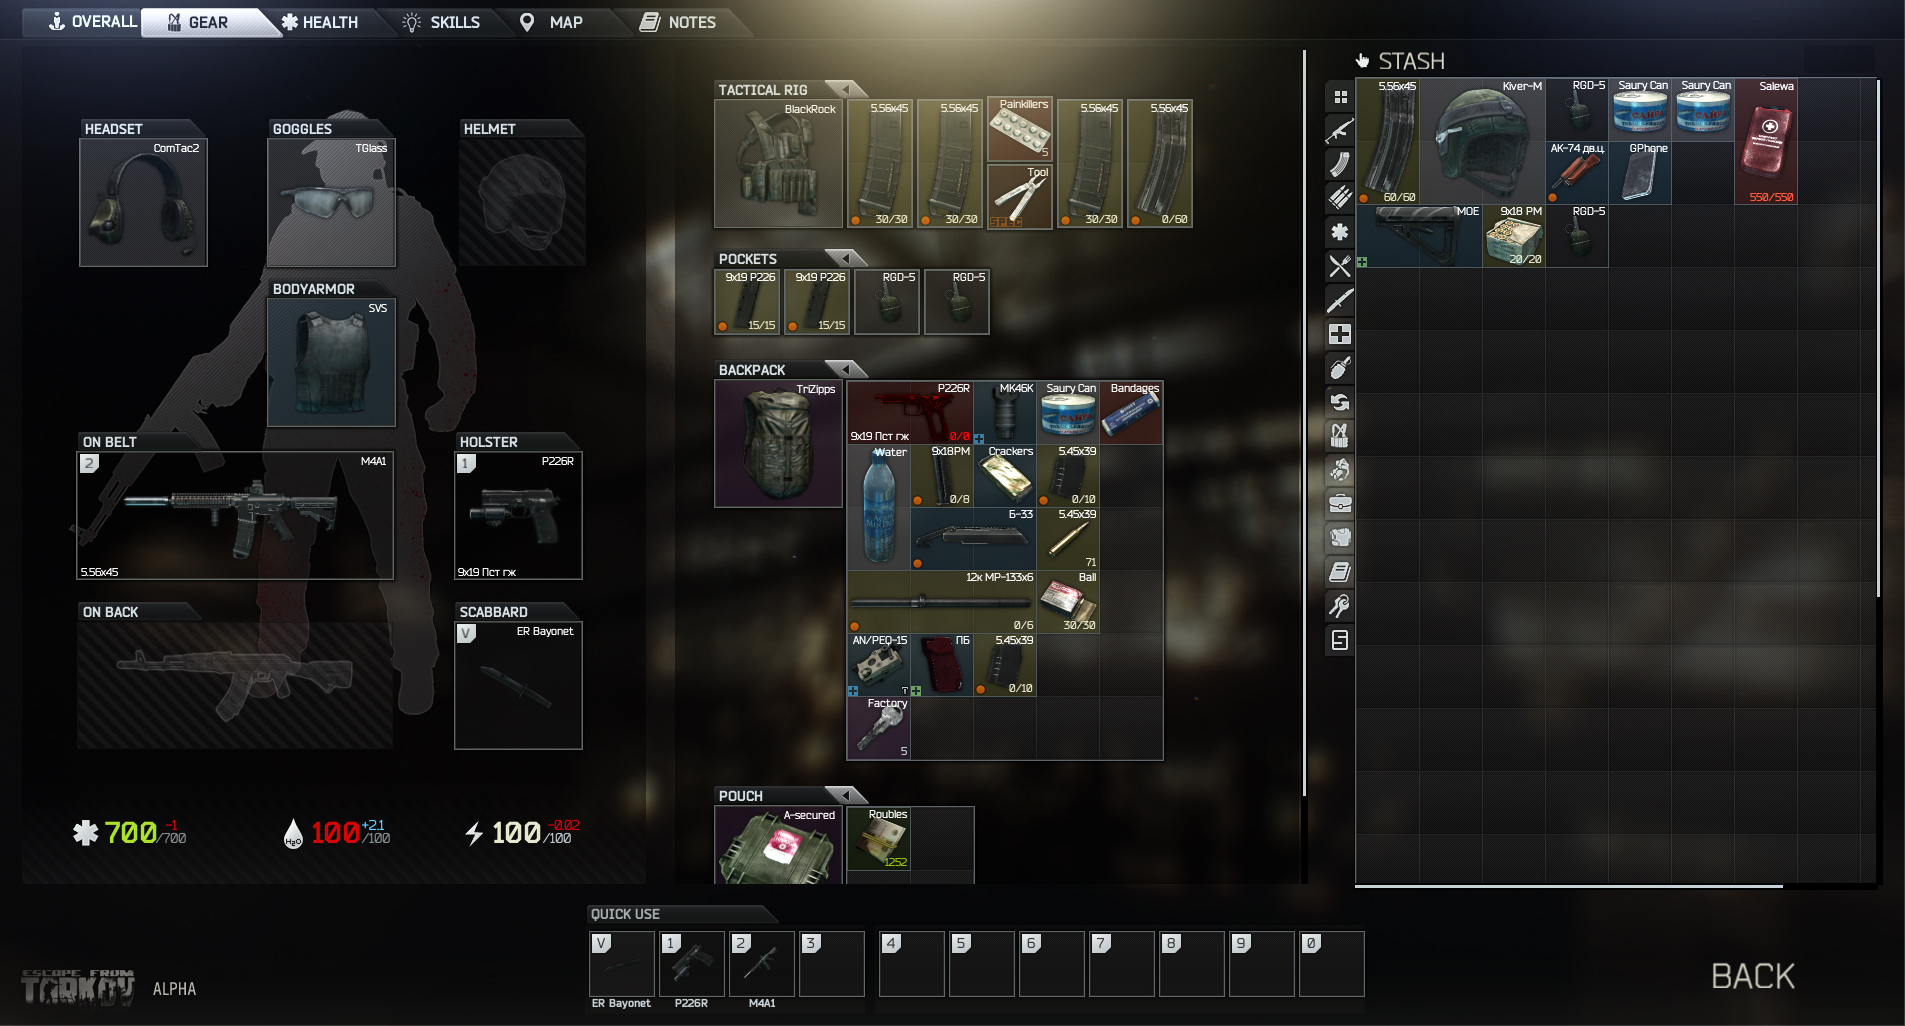 Quelle: http://www.escapefromtarkov.com/uploads/filemanager/files/interfaces/en/eft_alpha_interface_character_gear.jpg